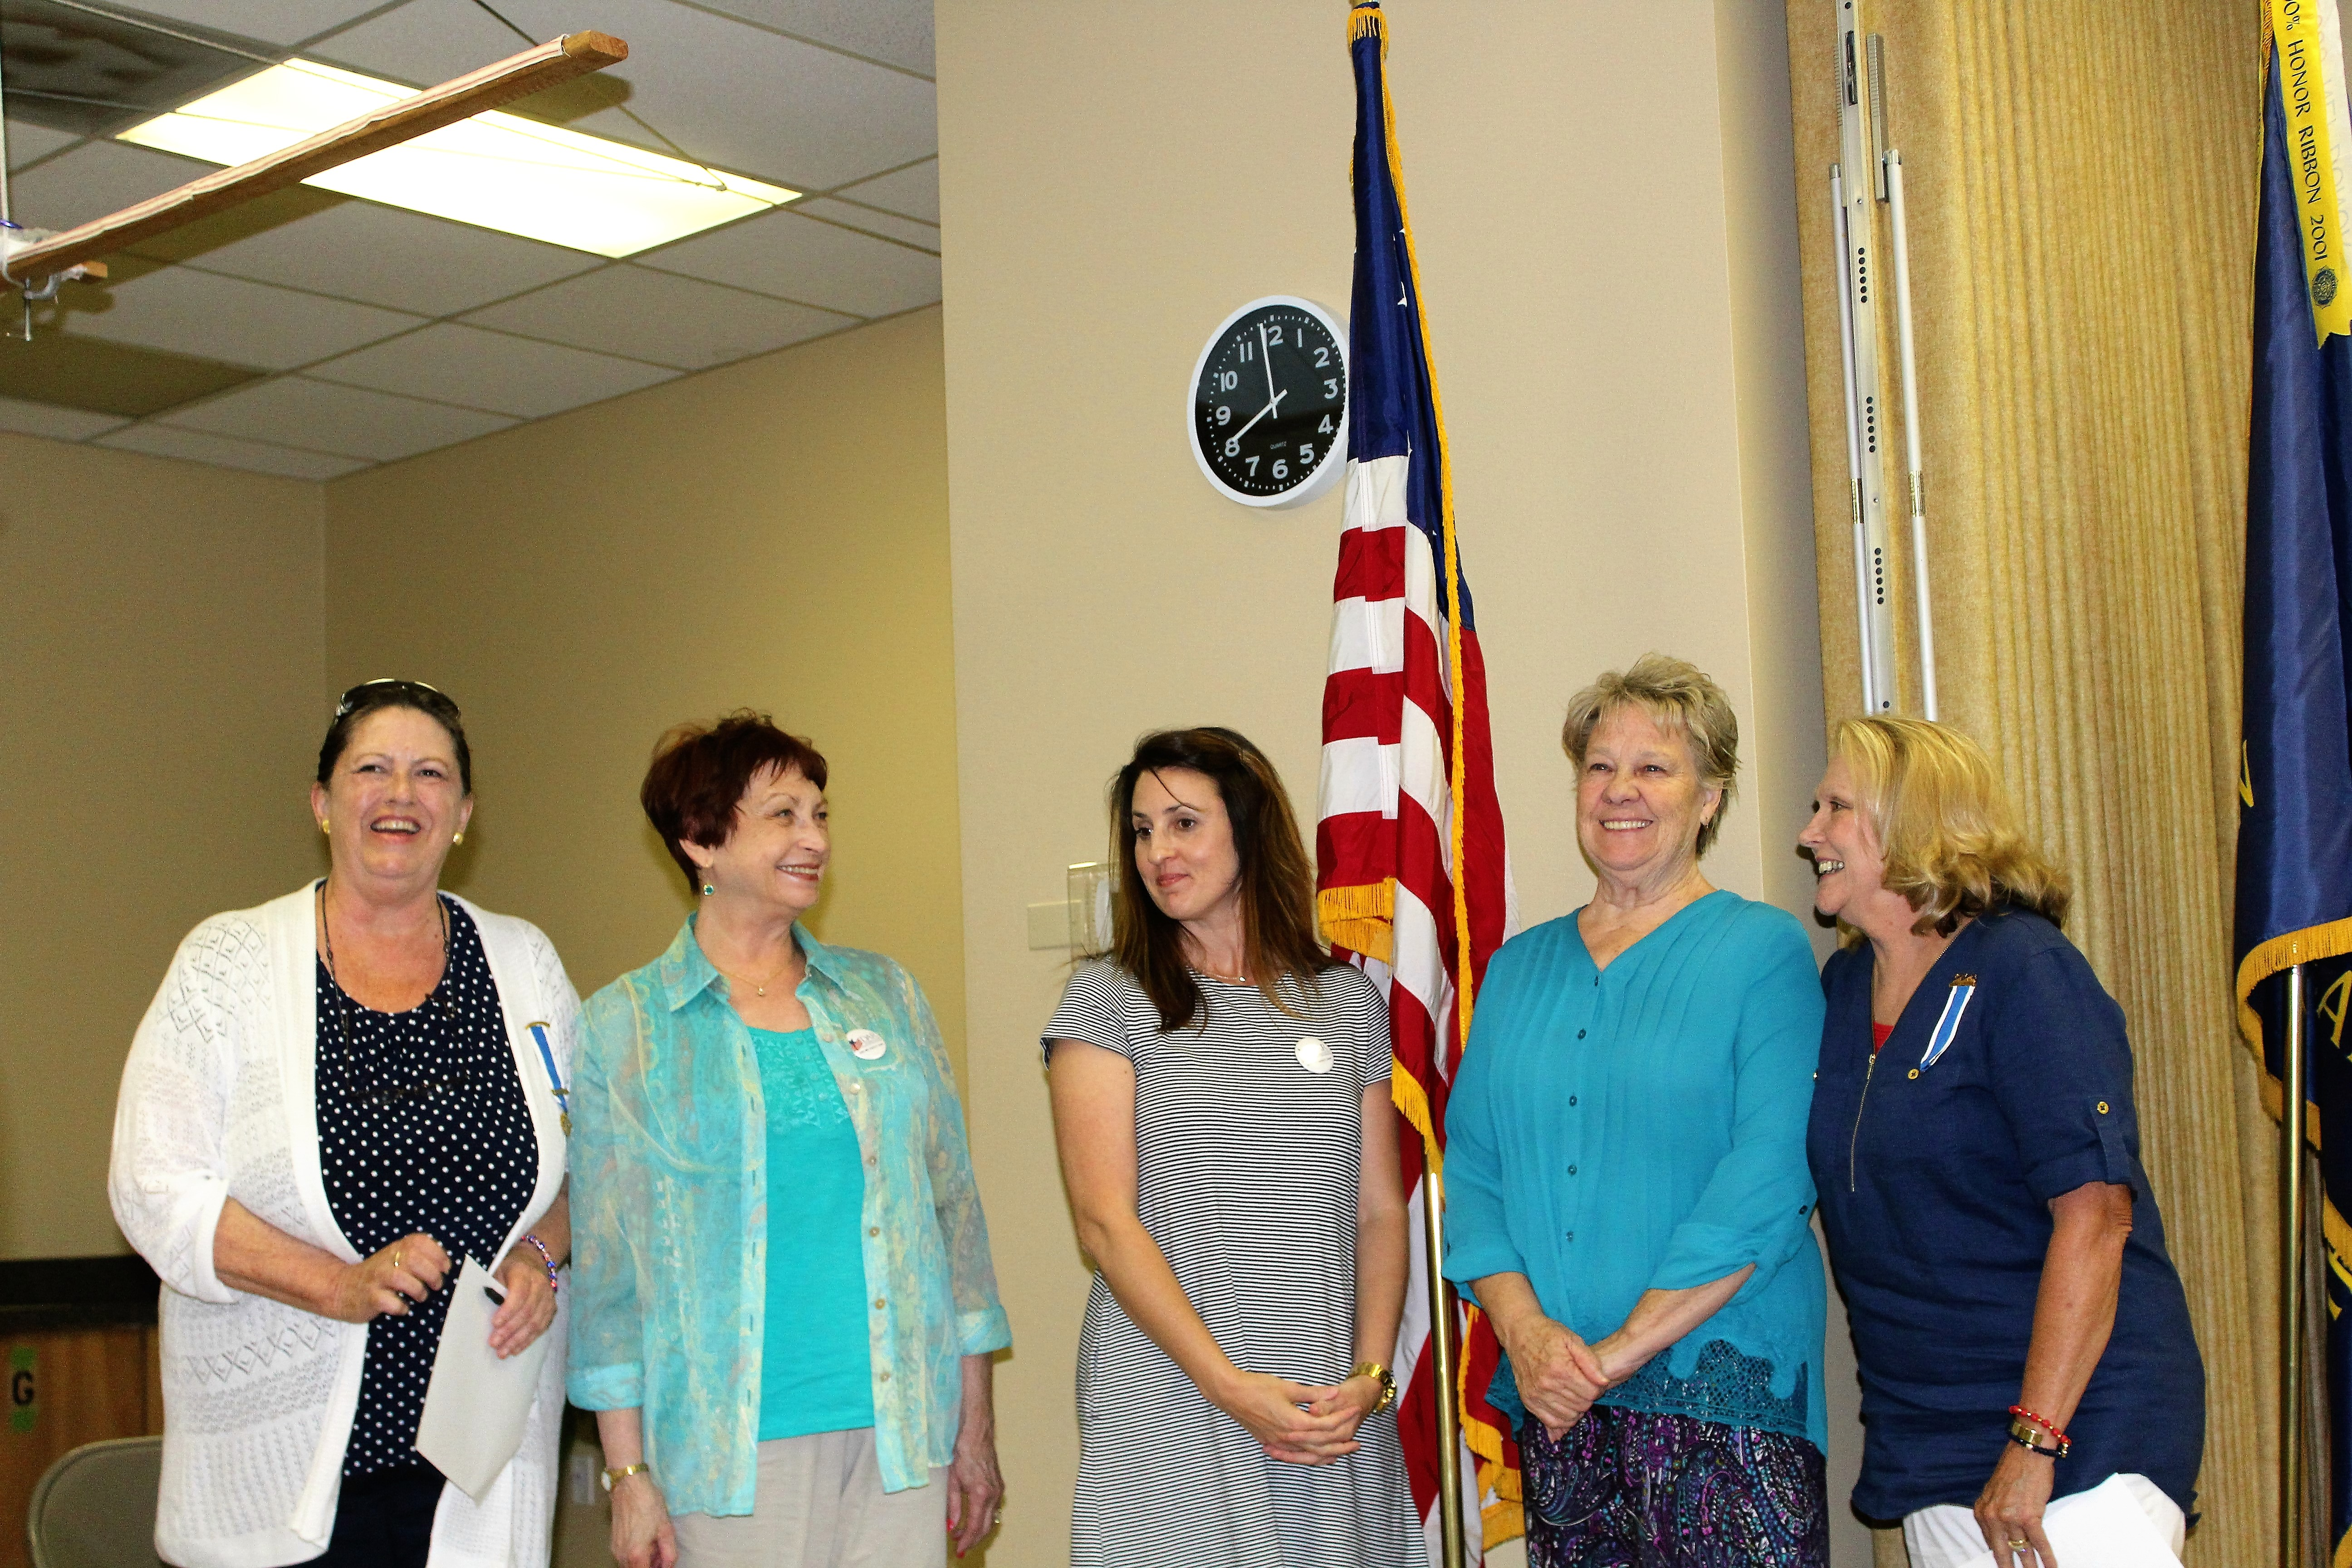 The owasso chapter nsdar installed three new members at for Acapulco golden tans salon owasso ok